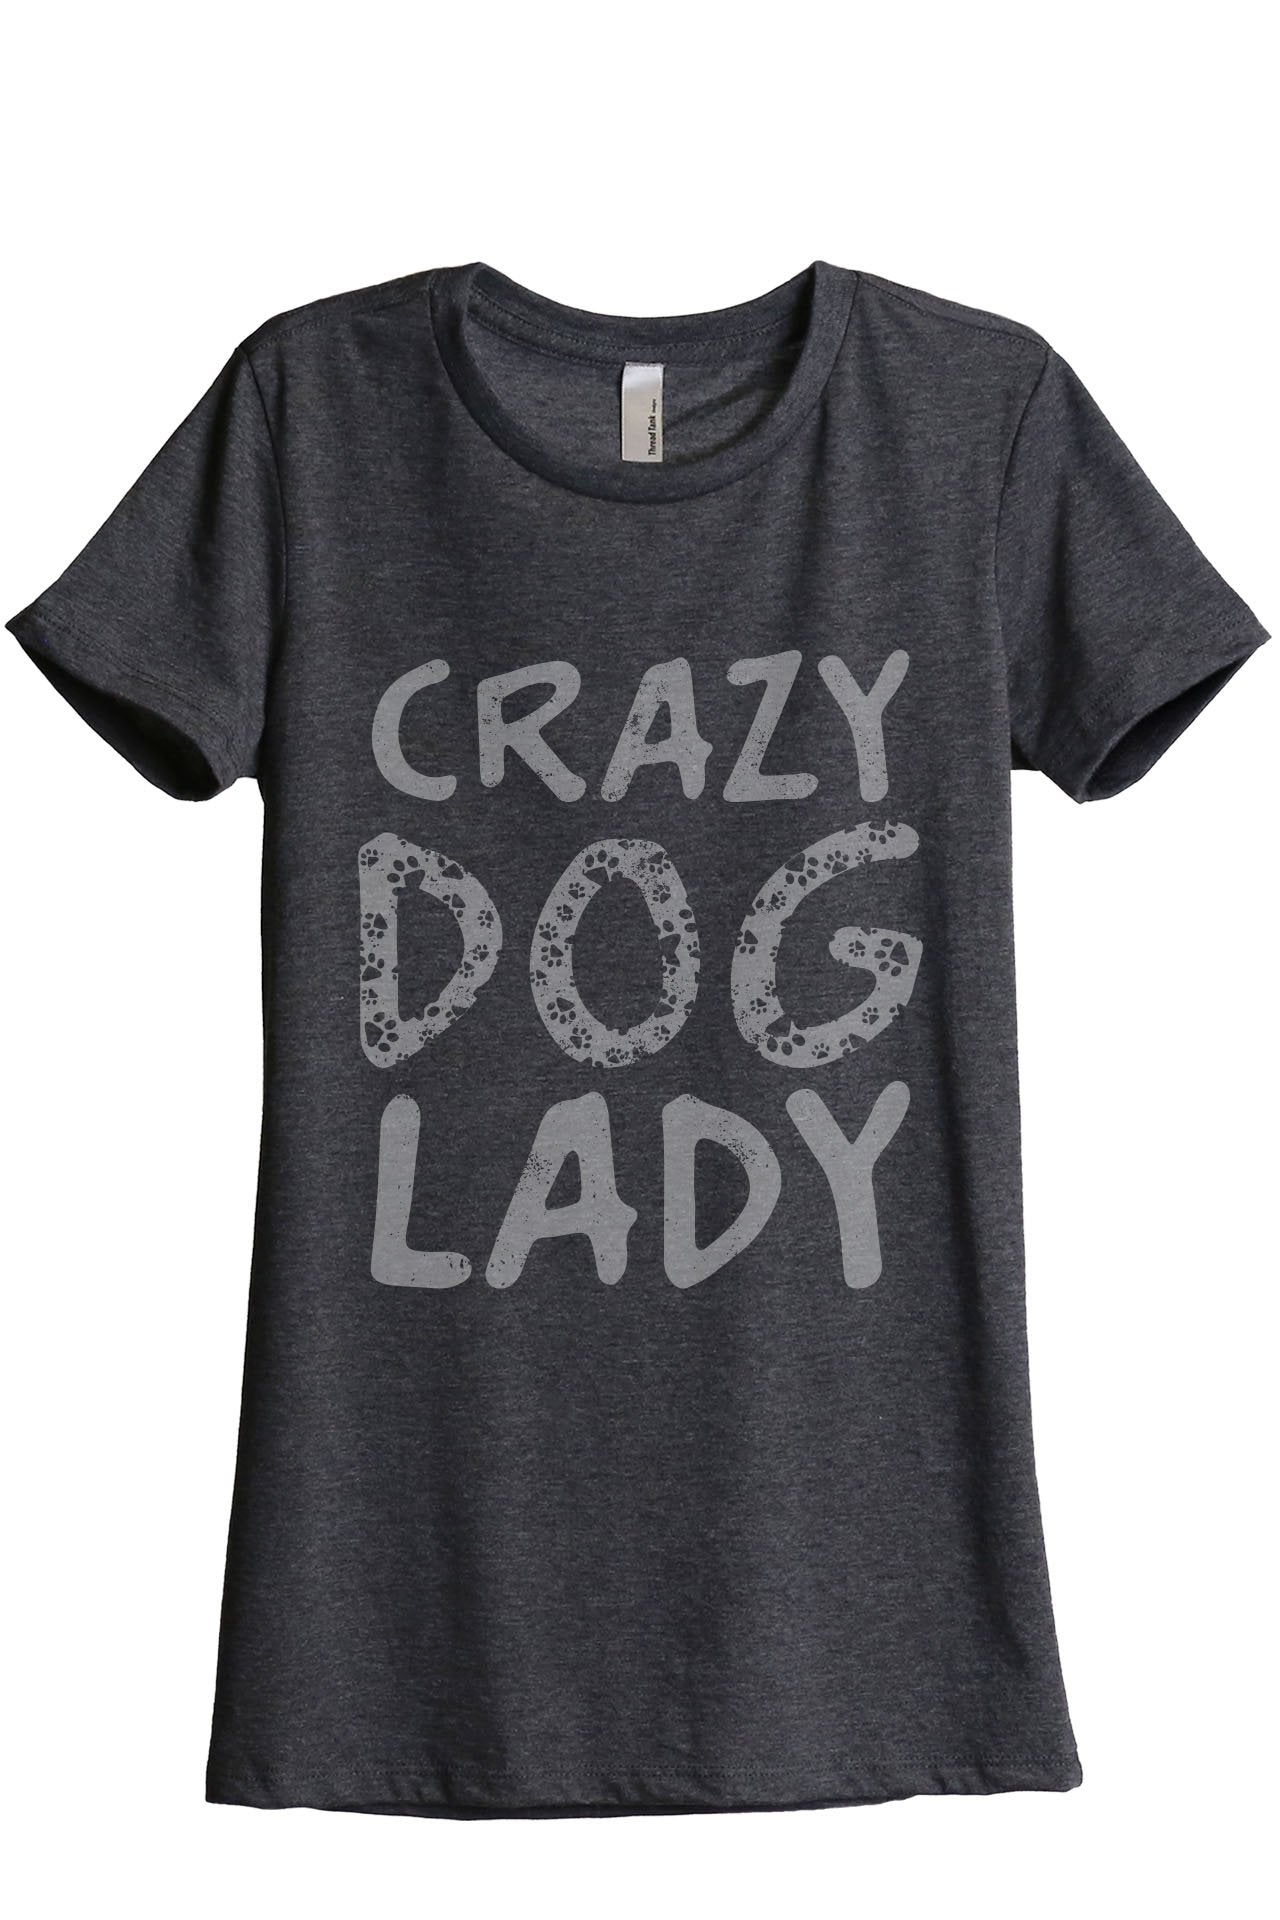 Crazy Dog Lady - Thread Tank | Stories You Can Wear | T-Shirts, Tank Tops and Sweatshirts